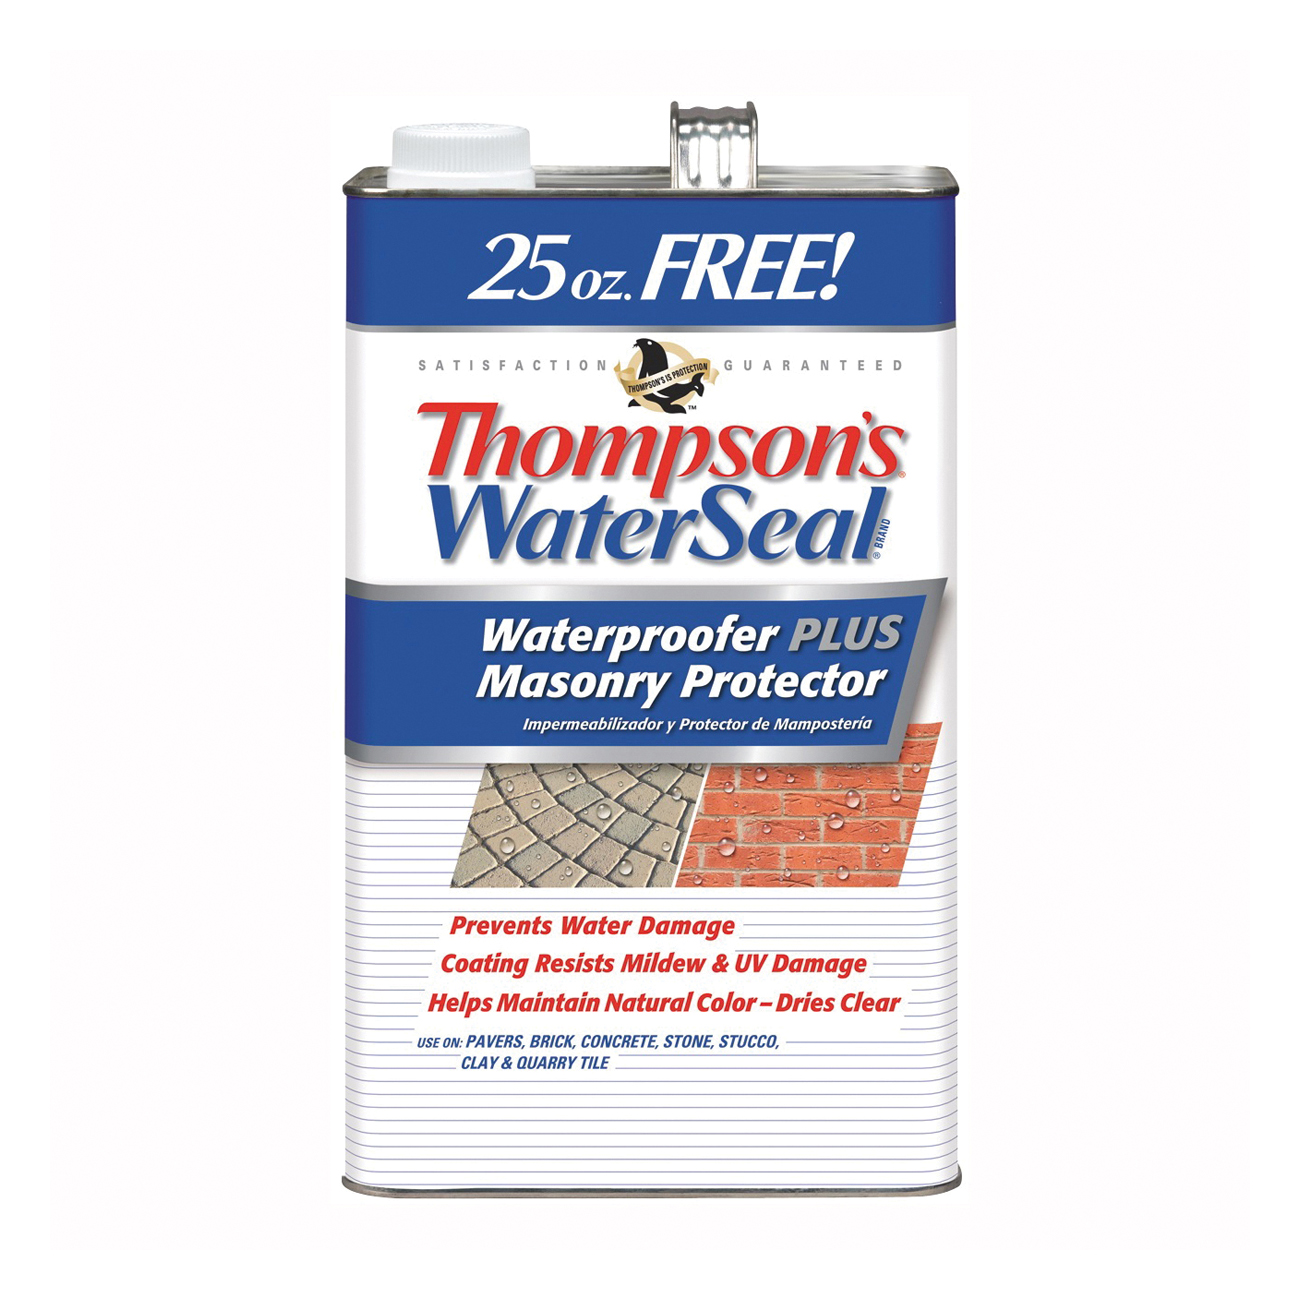 Picture of Thompson's WaterSeal TH.023111-03 Waterproofer Plus Masonry Protector, Clear, 25 oz Package